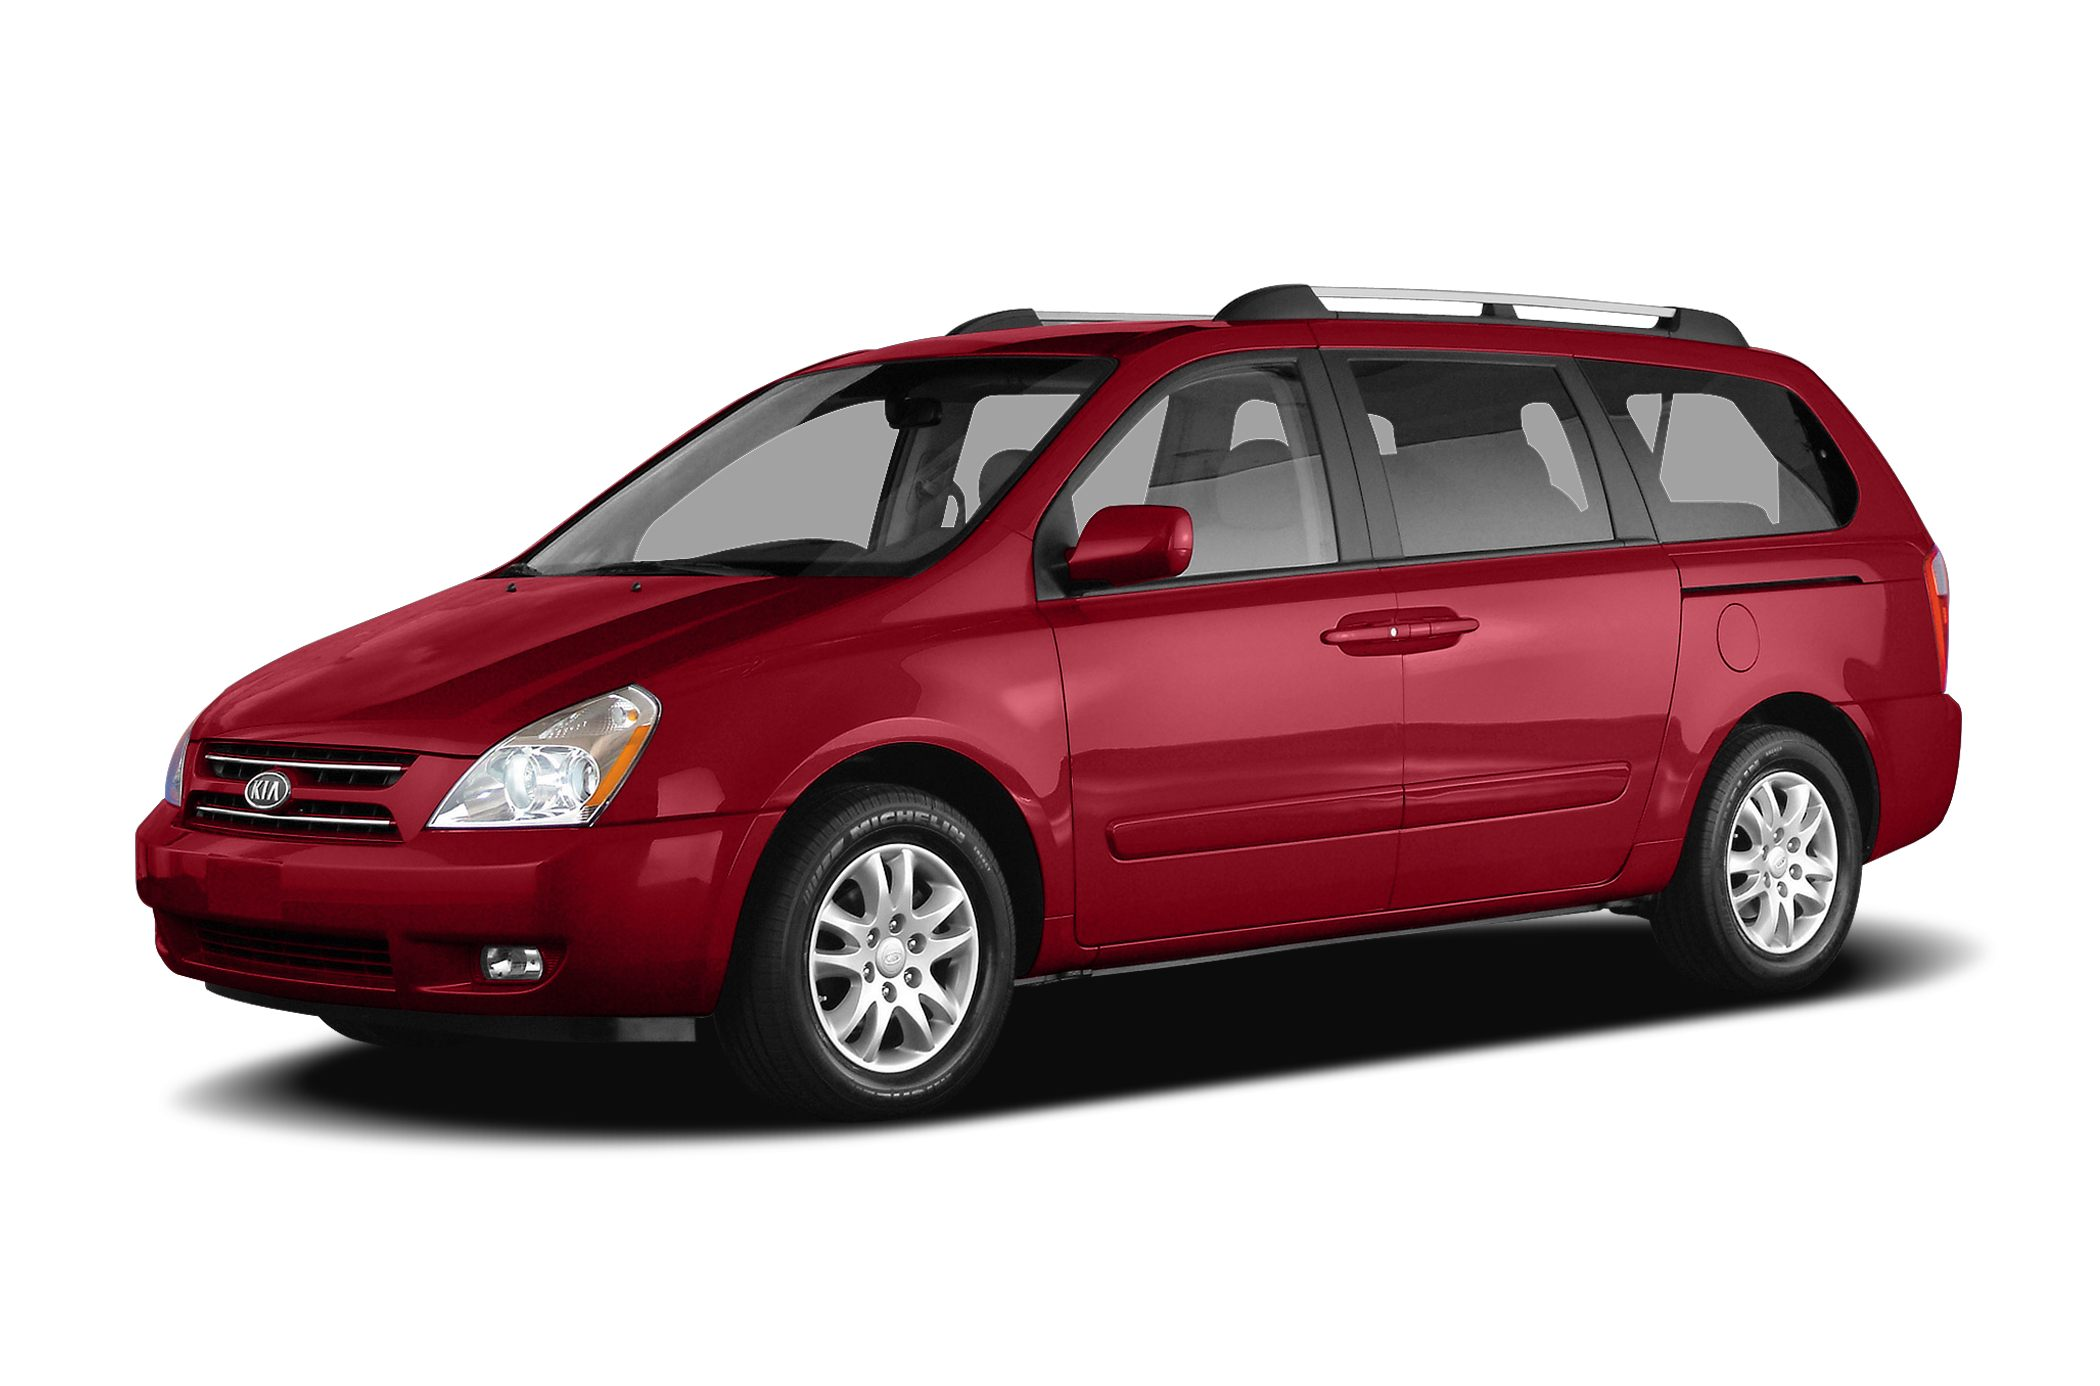 2006 Kia Sedona LX Minivan for sale in Pawtucket for $6,995 with 138,557 miles